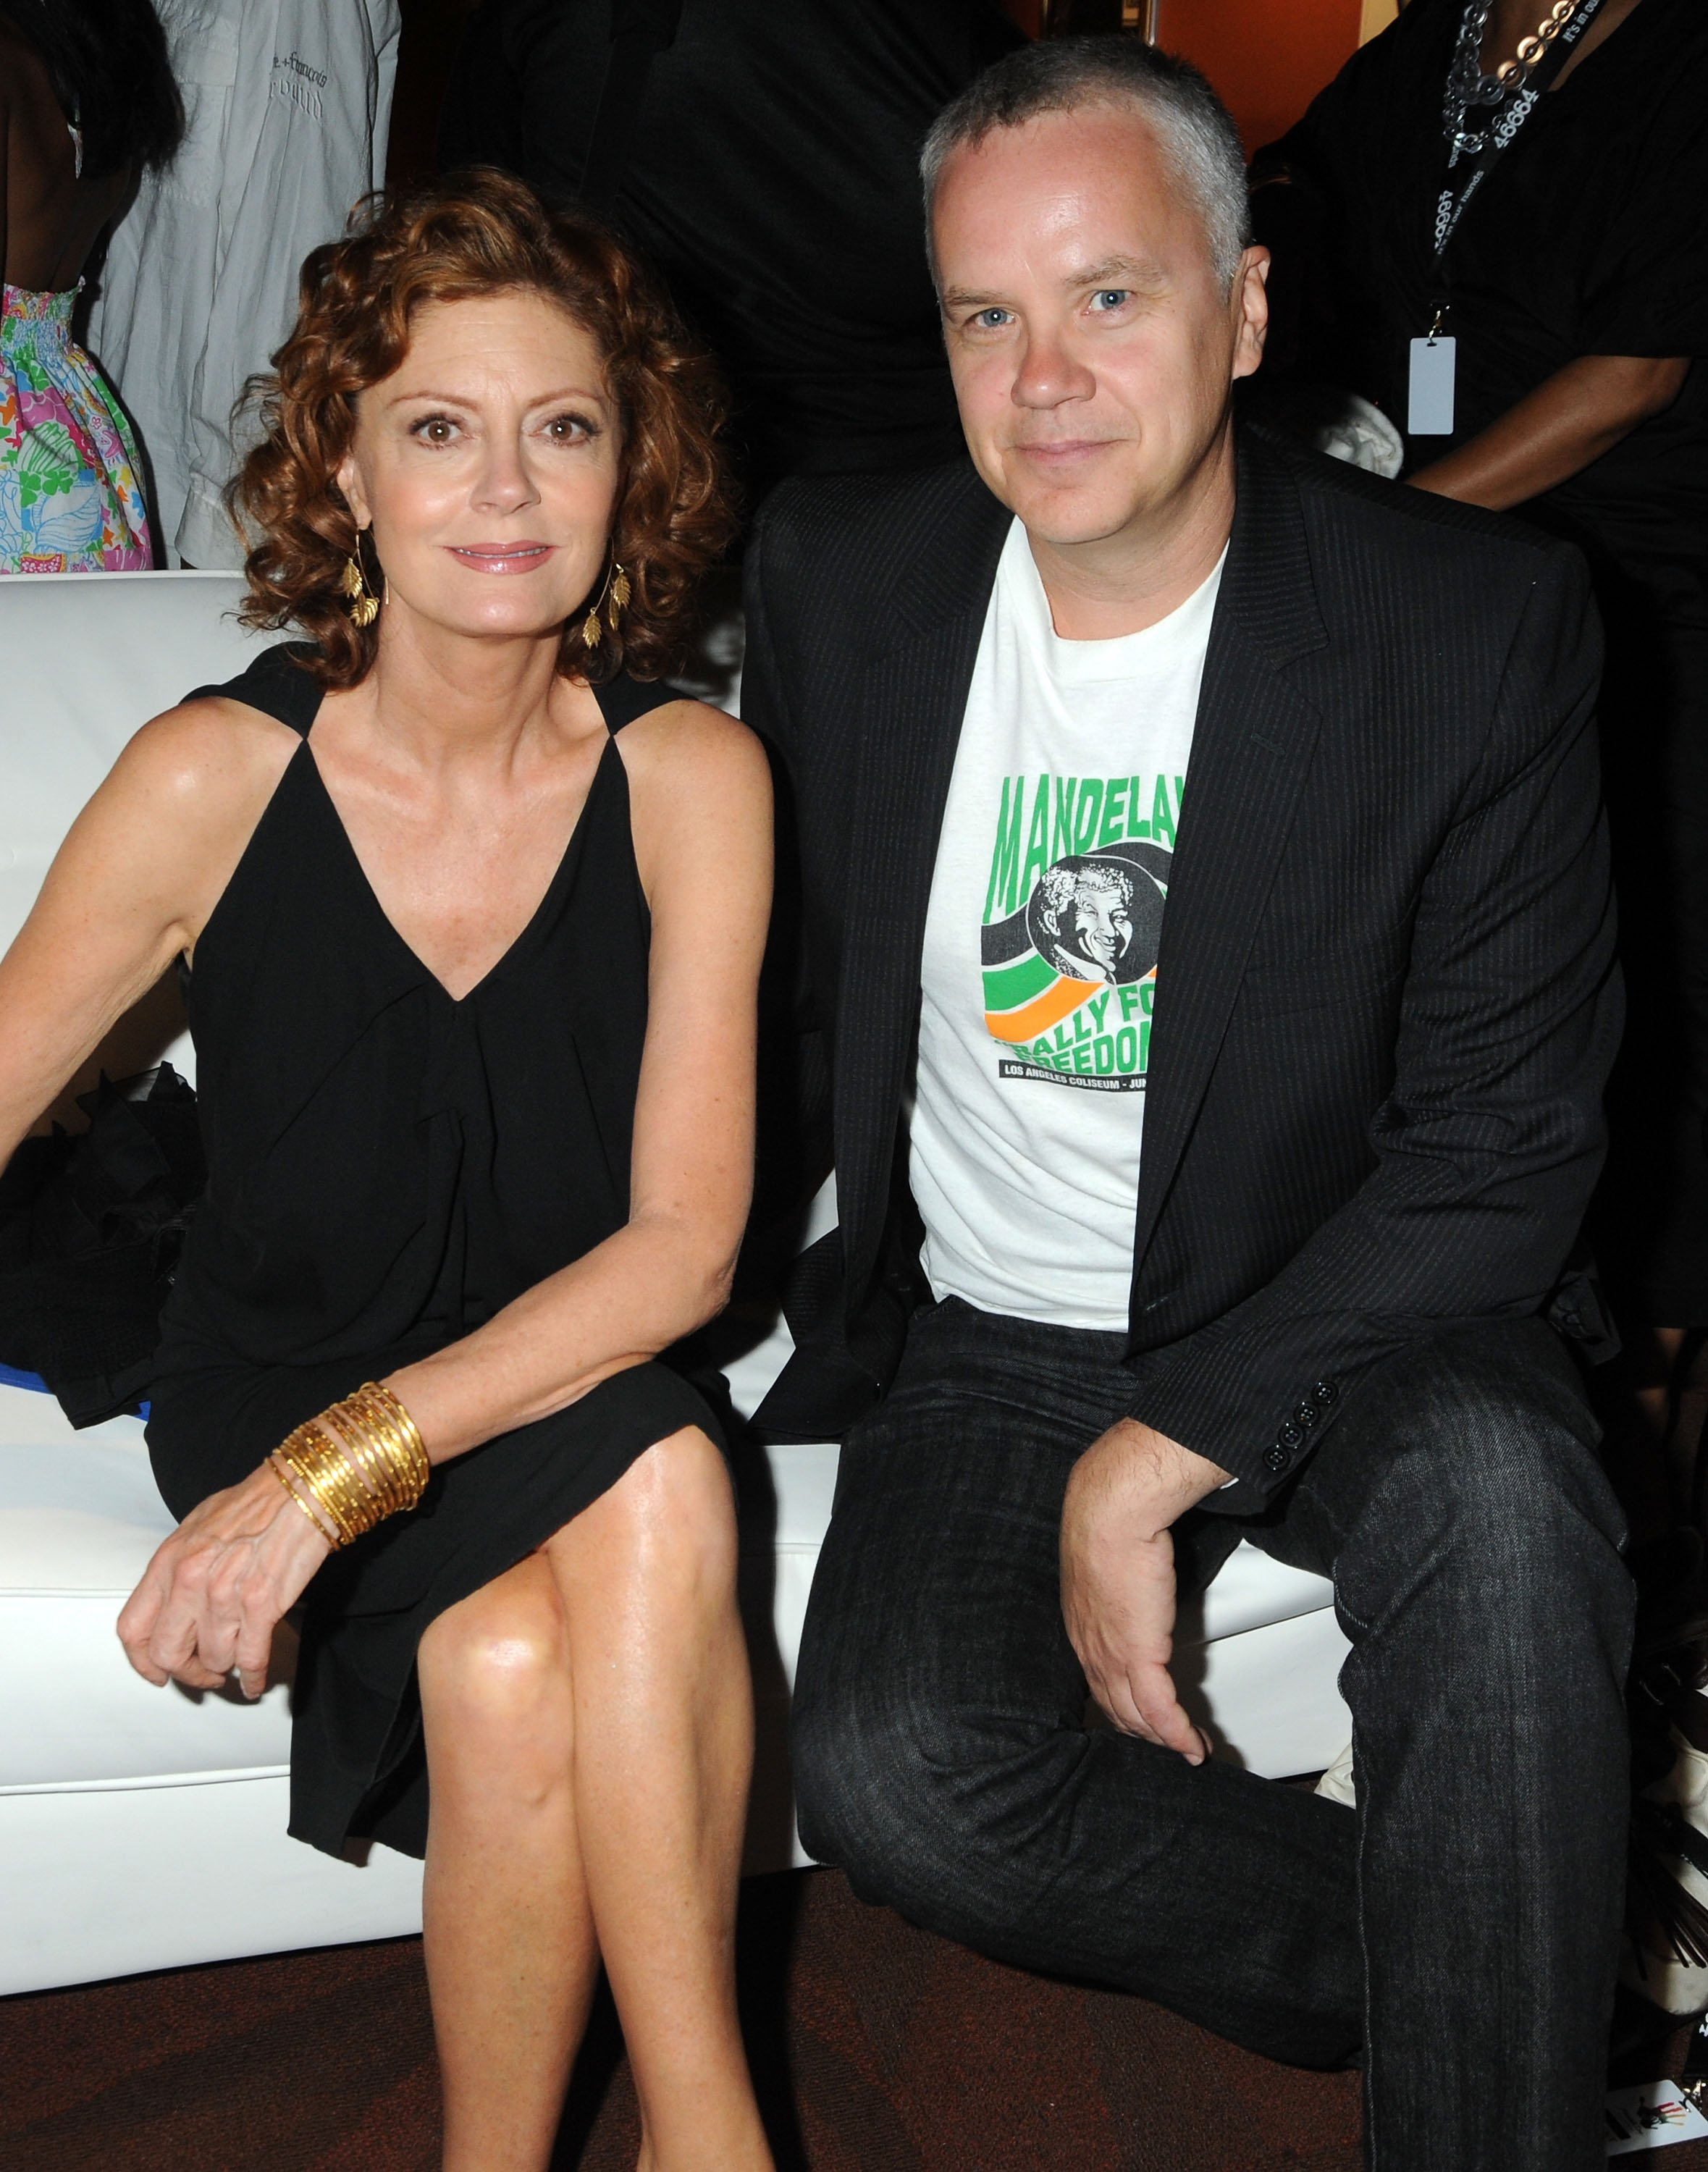 Susan Sarandon and Tim Robbins at the Mandela Day: A Celebration Concert on July 18, 2009 | Photo: GettyImages